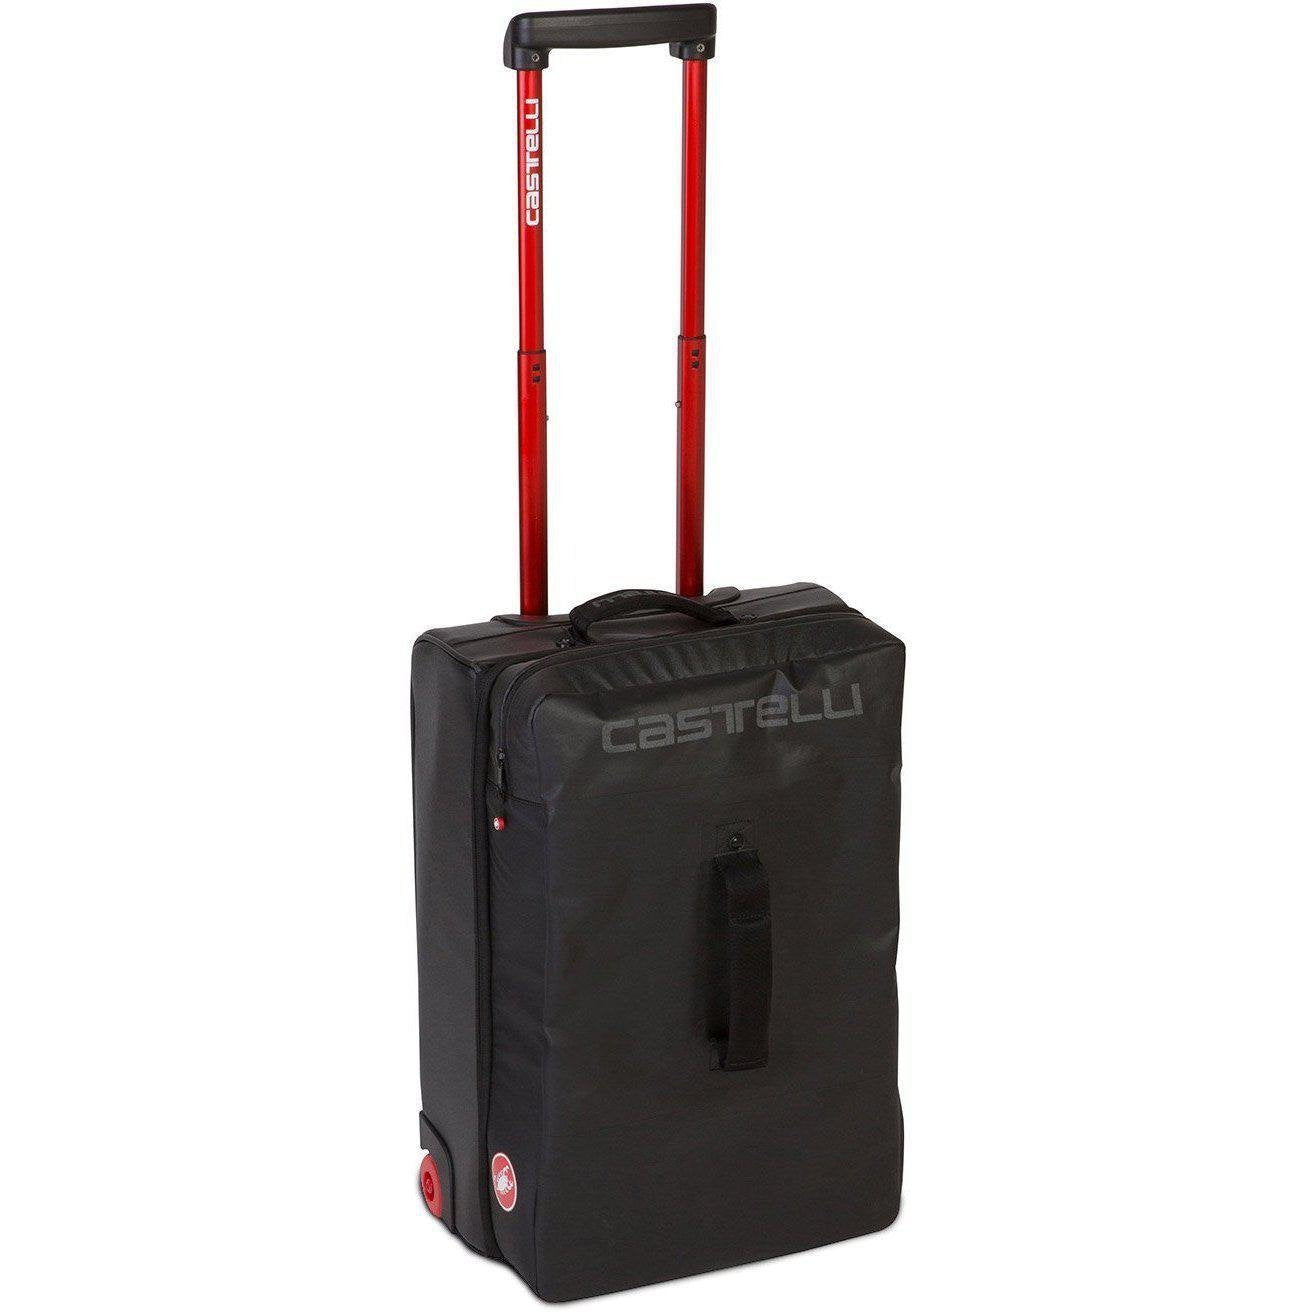 Castelli-Castelli Rolling Travel Bag-Black-Uni-CS8900100-saddleback-elite-performance-cycling